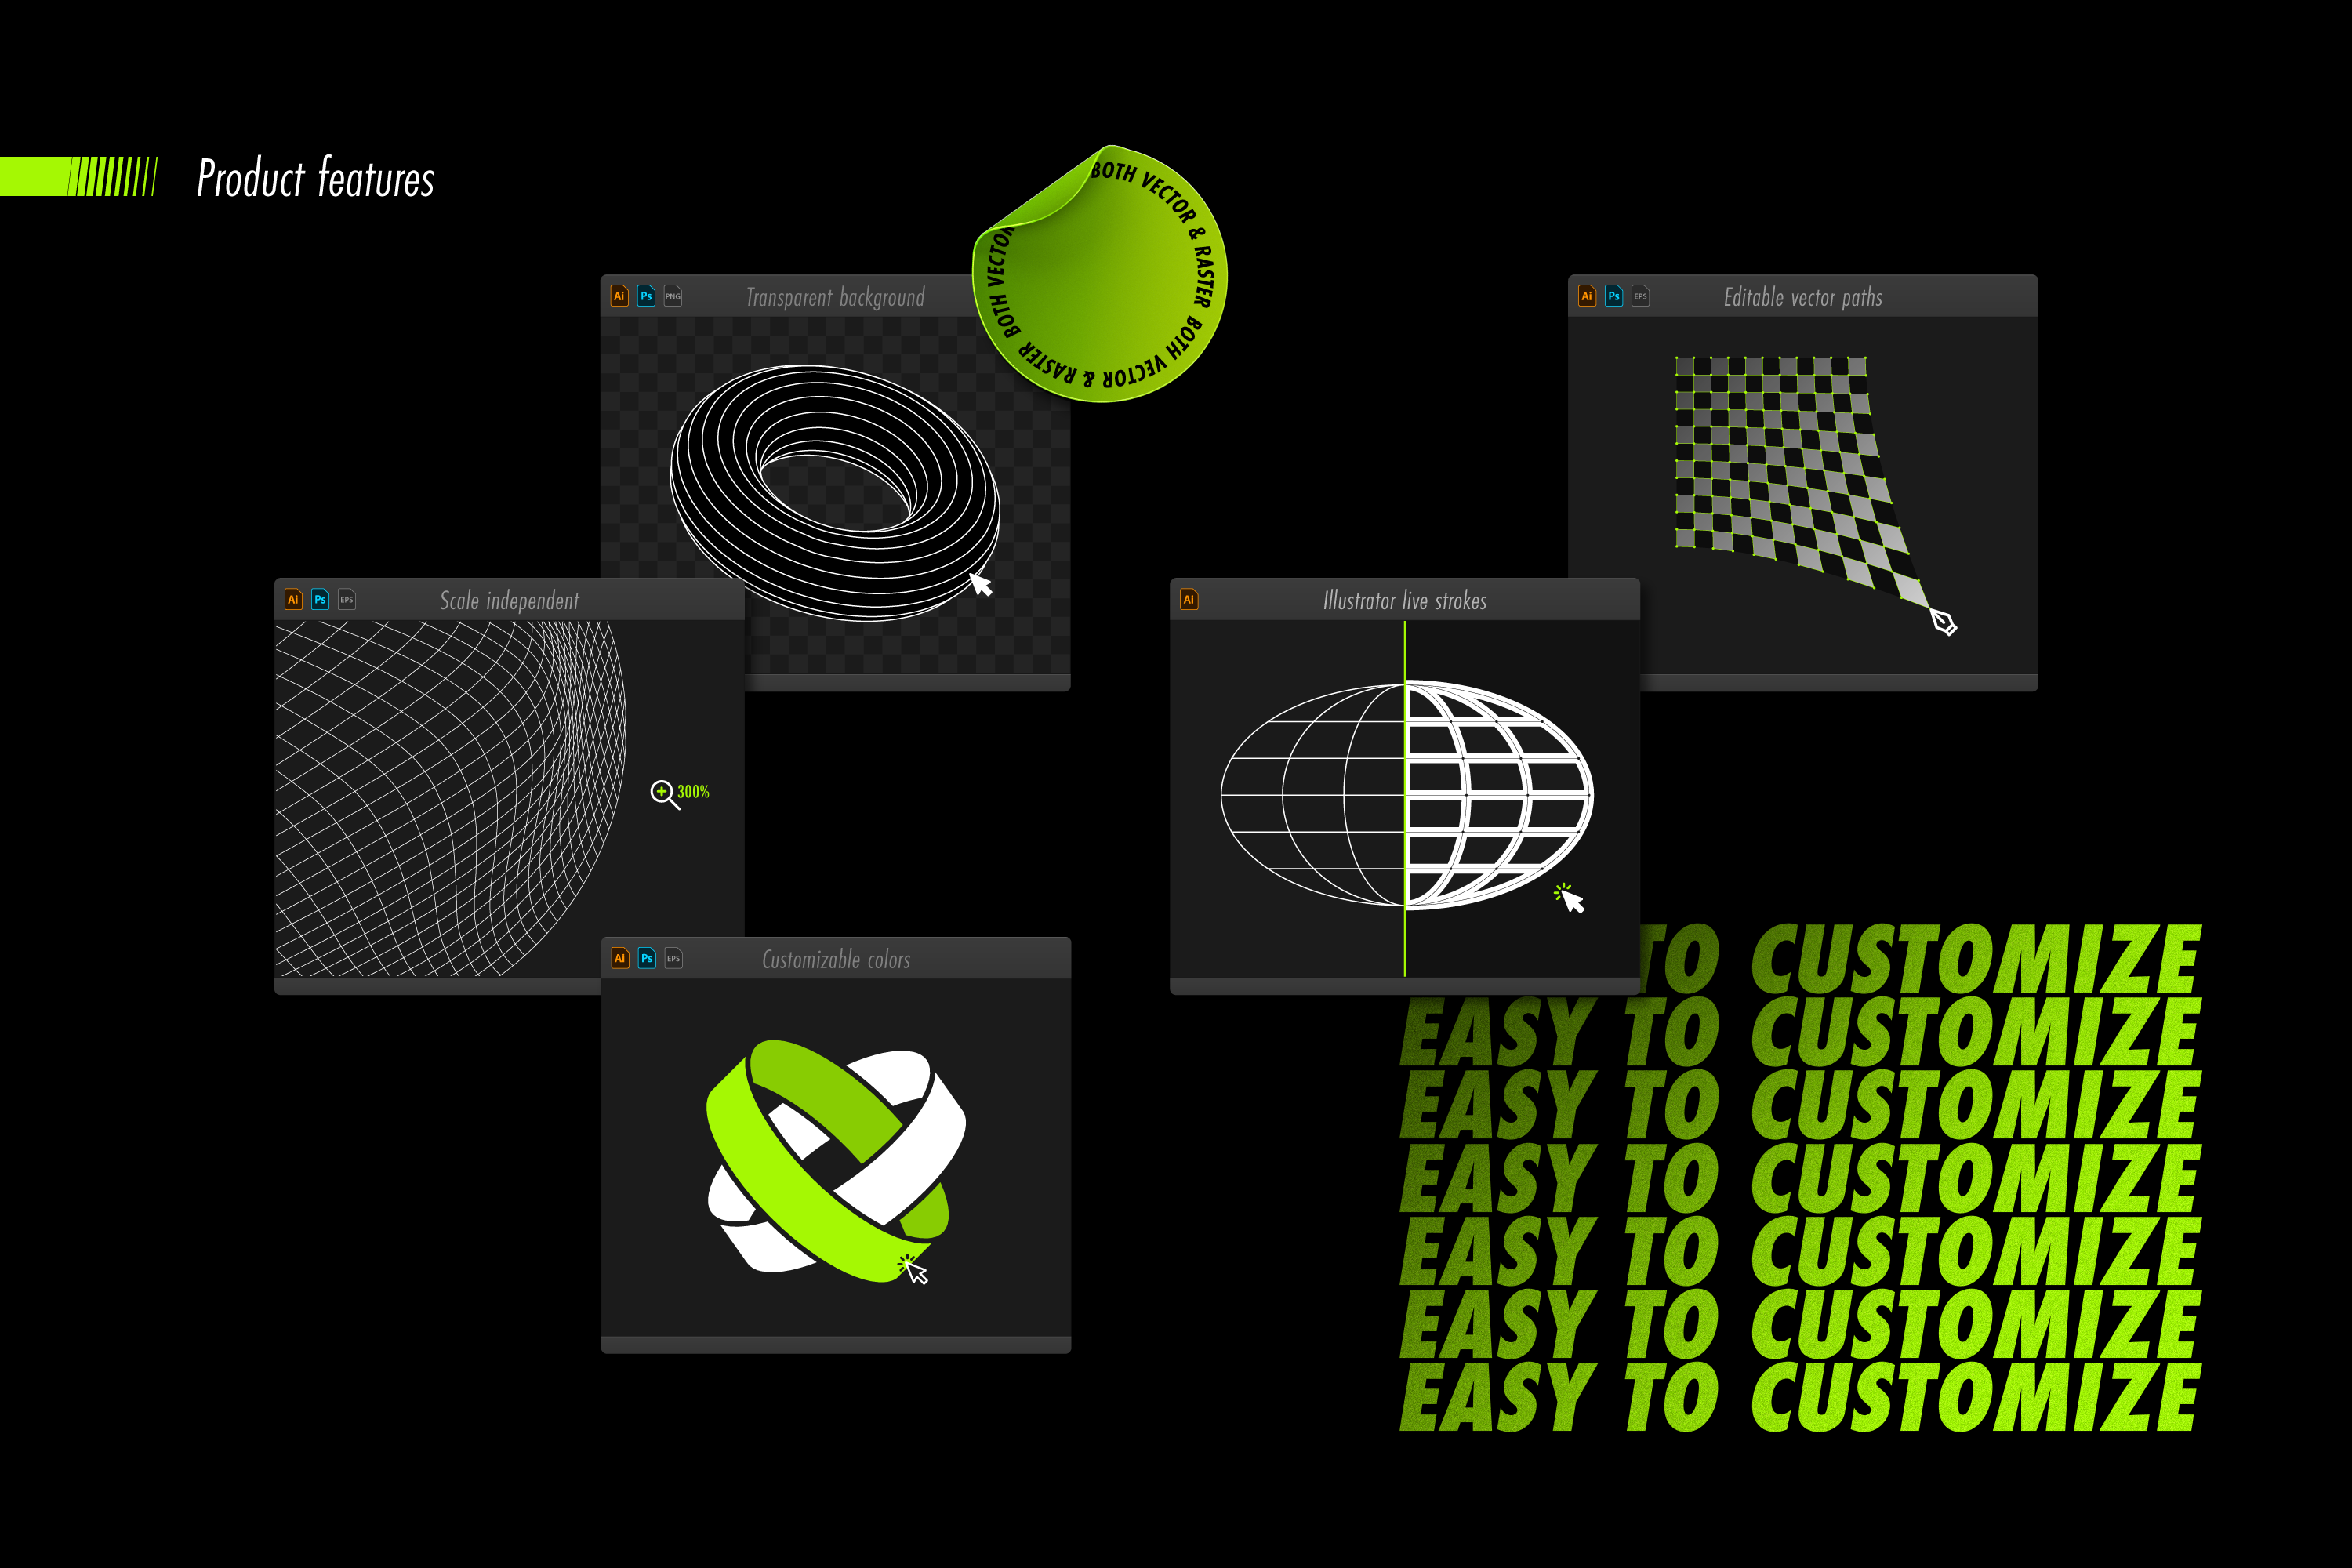 Abstract Shapes collection - 100 design elements example image 14